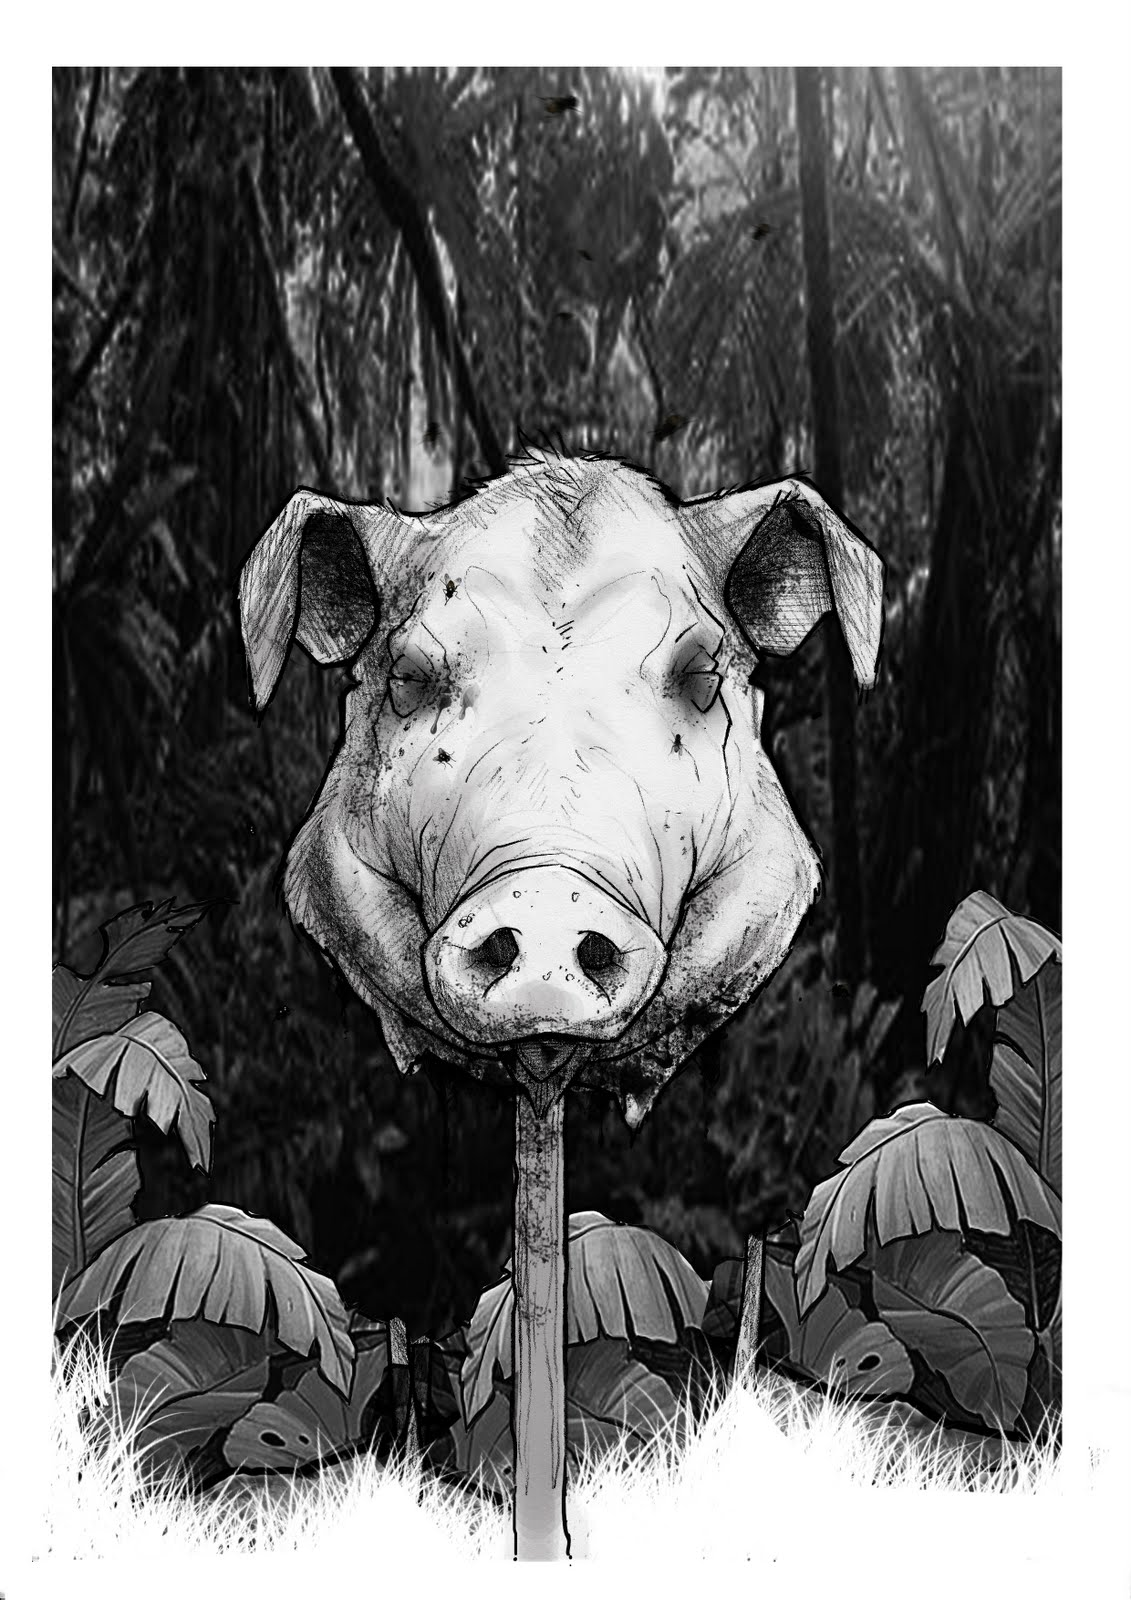 Cartoon pig head on a stick - photo#9